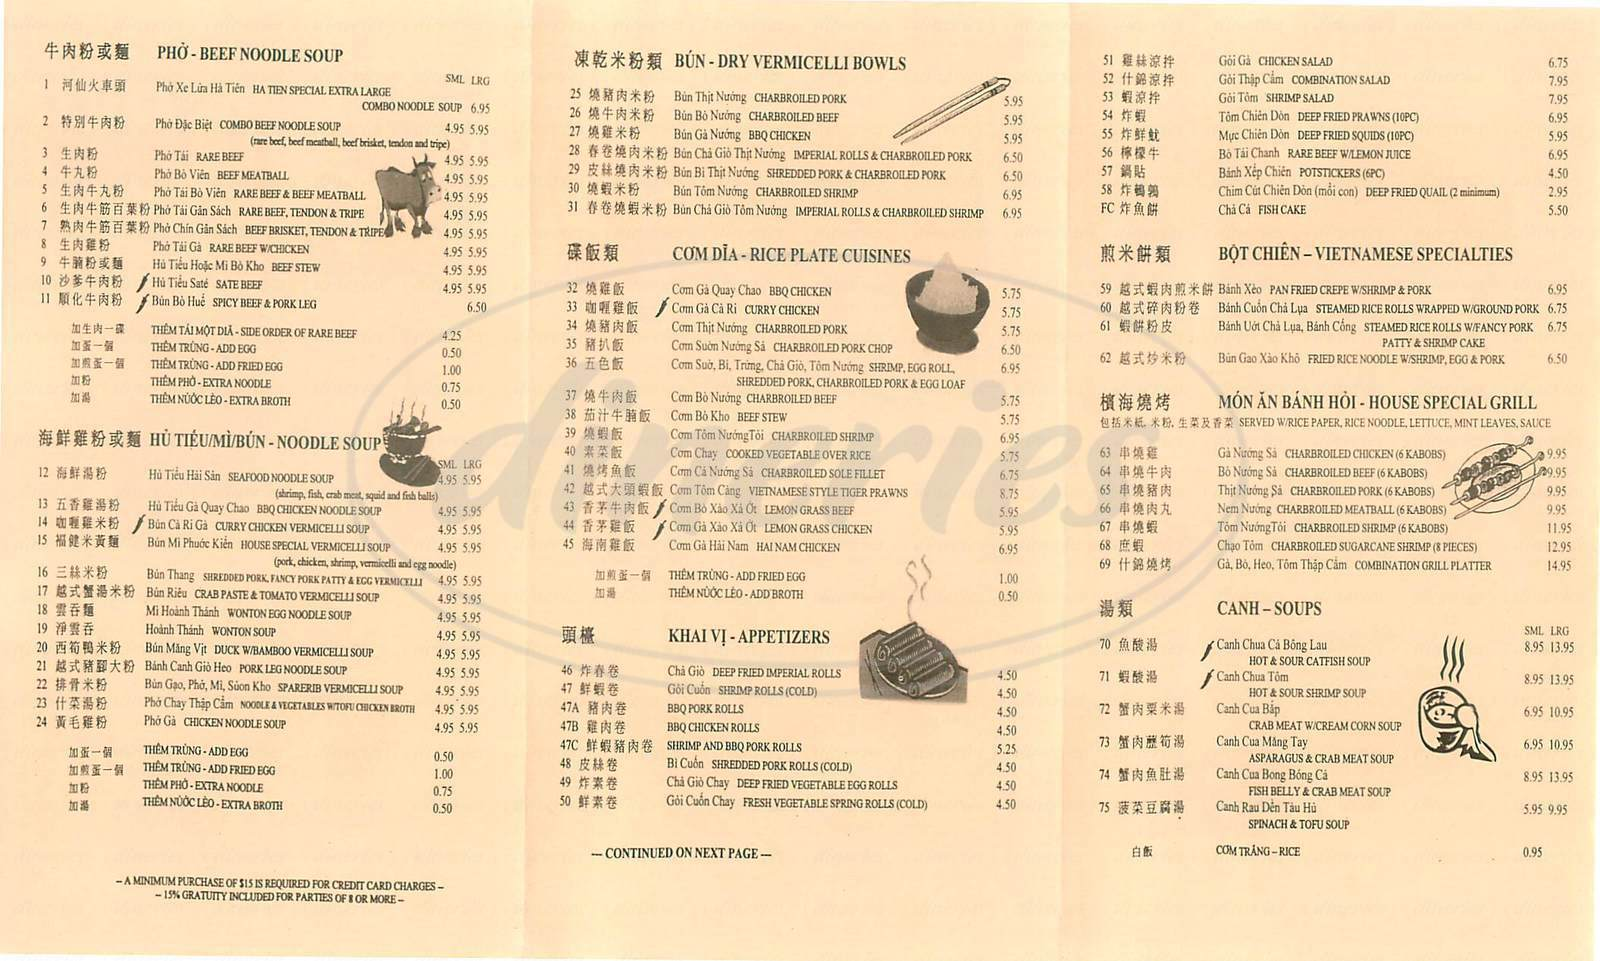 menu for Pho Ha Tien Restaurants